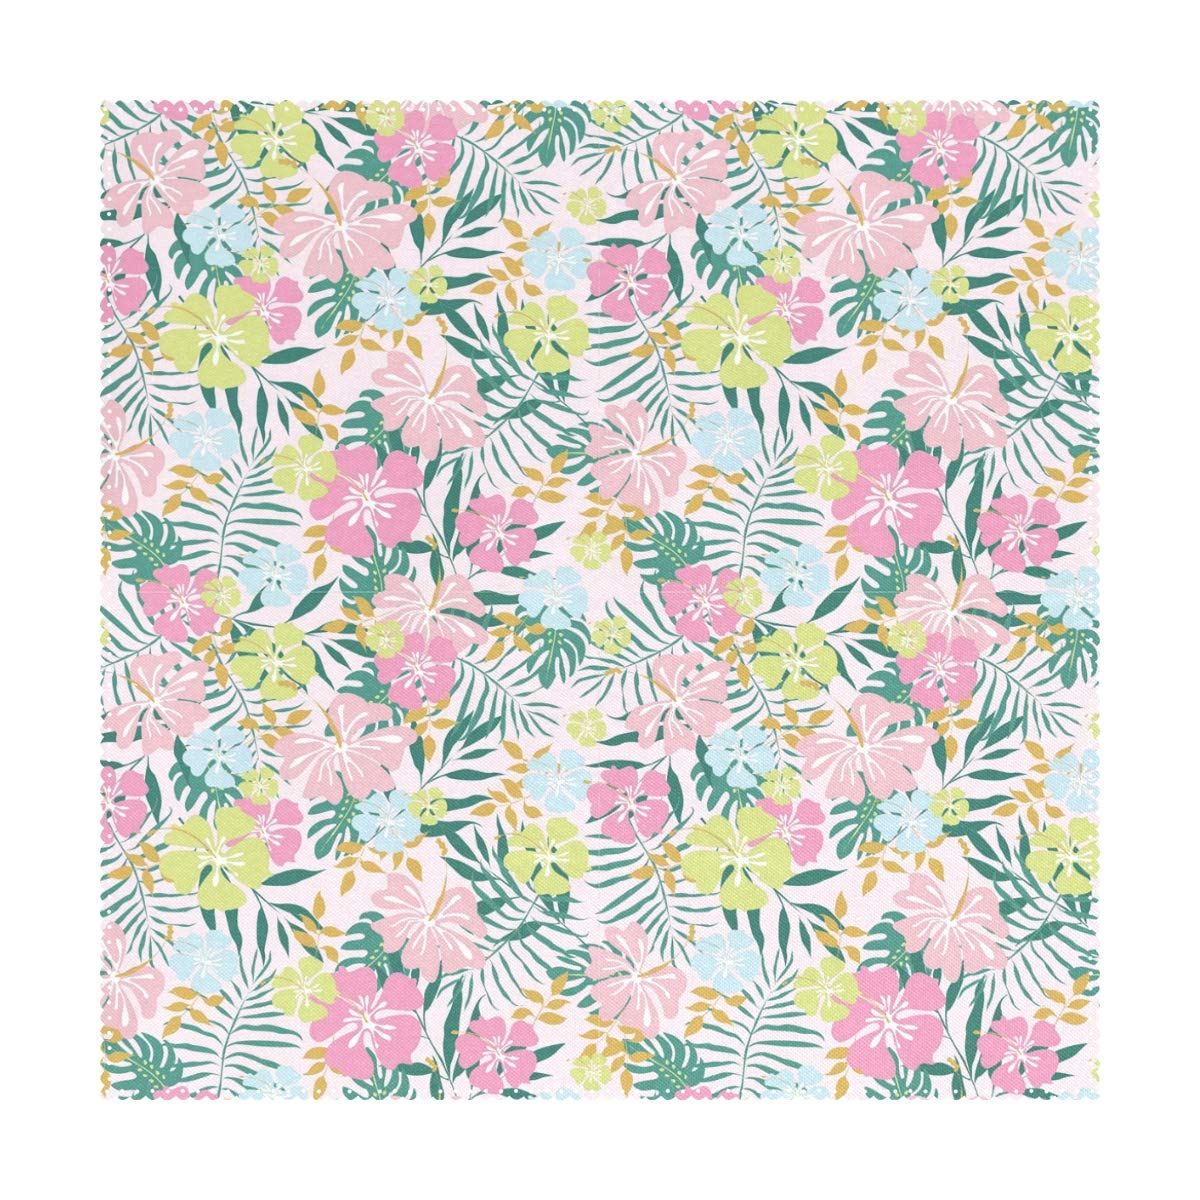 """LORVIES Hawaiian Flowers and Palms Leafes Placemats 1 Piece, Heat-Resistant Placemats Stain Resistant Washable Polyester Square Table Place Mat for Kitchen Decorative Dining Table, 12""""x12"""""""